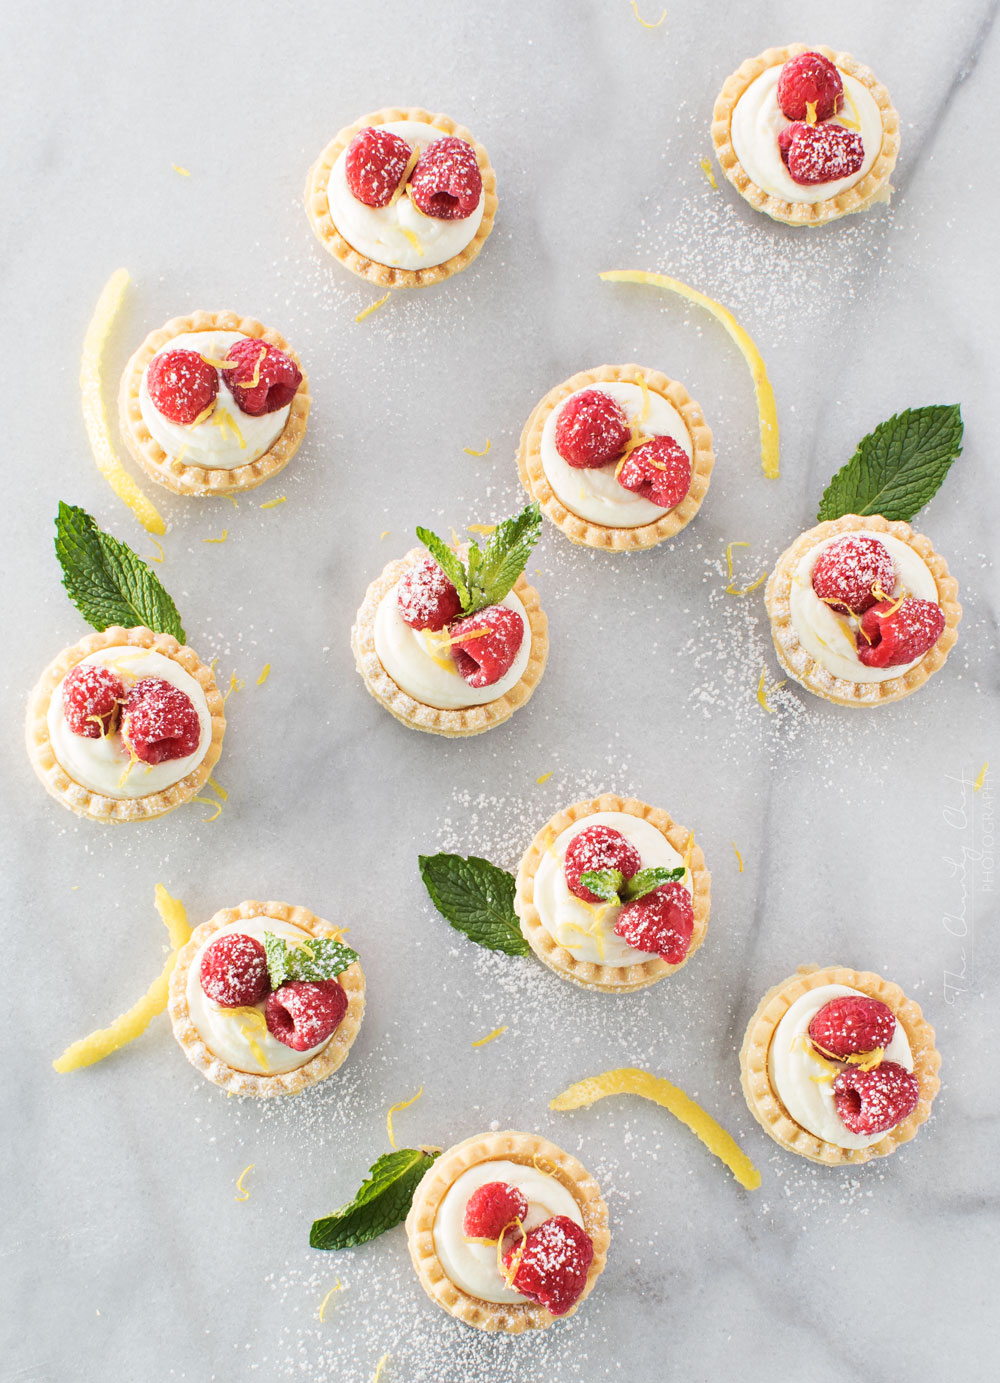 These mini lemon white chocolate cheesecakes taste even better than they look!